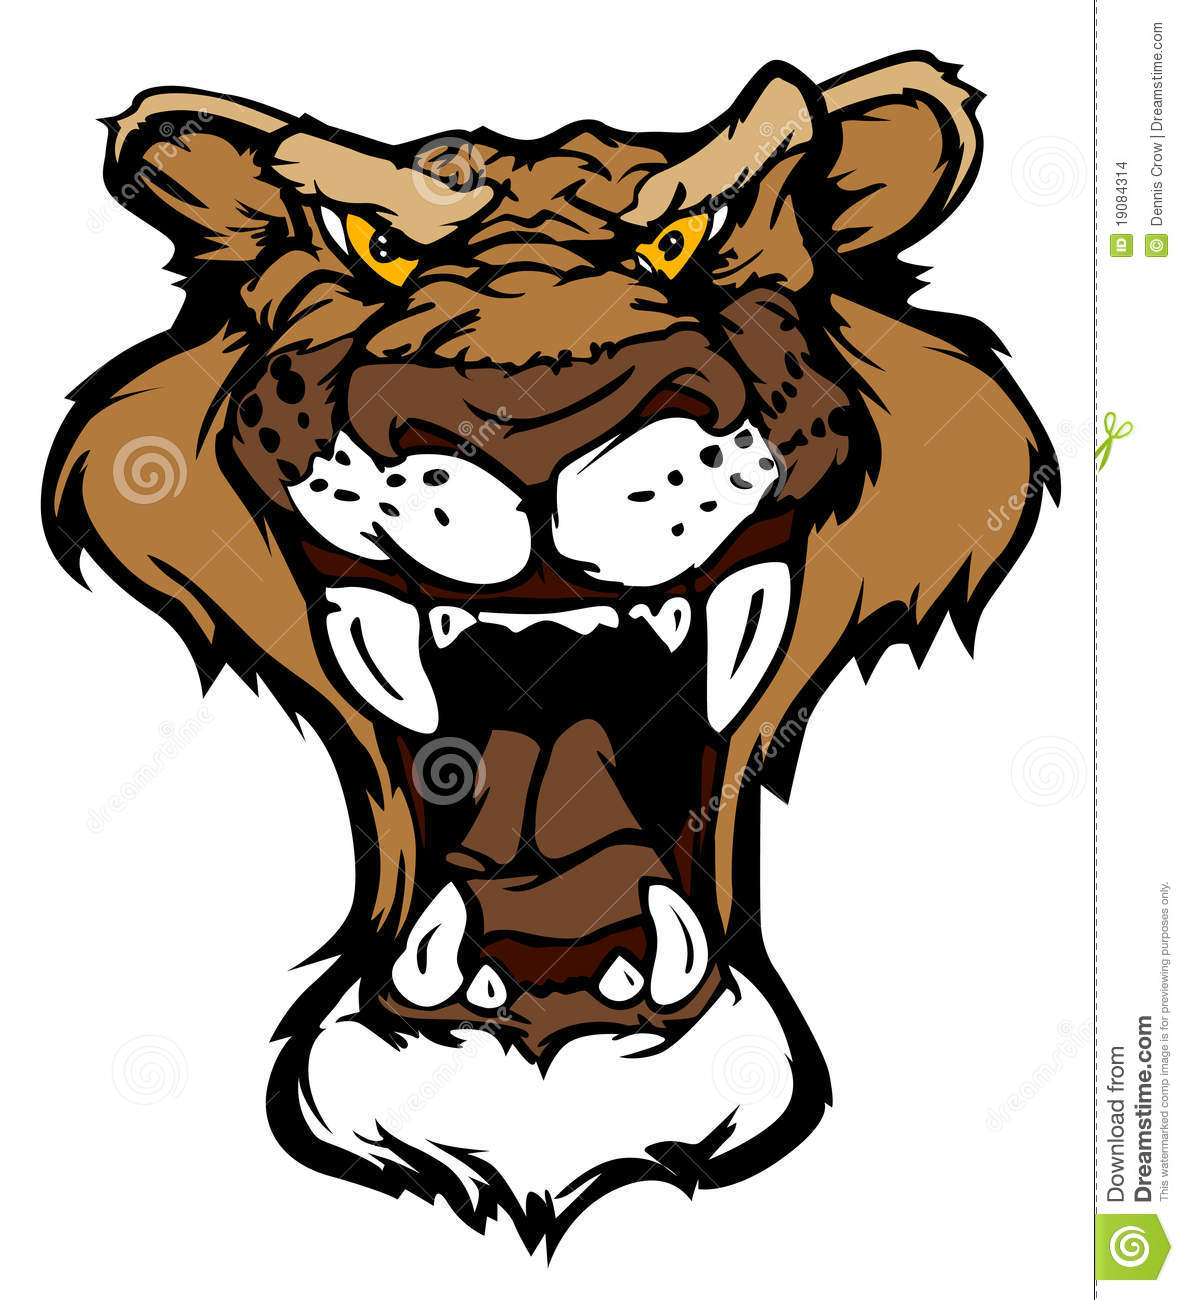 More similar stock images of ` Panther Cougar Mascot Logo `